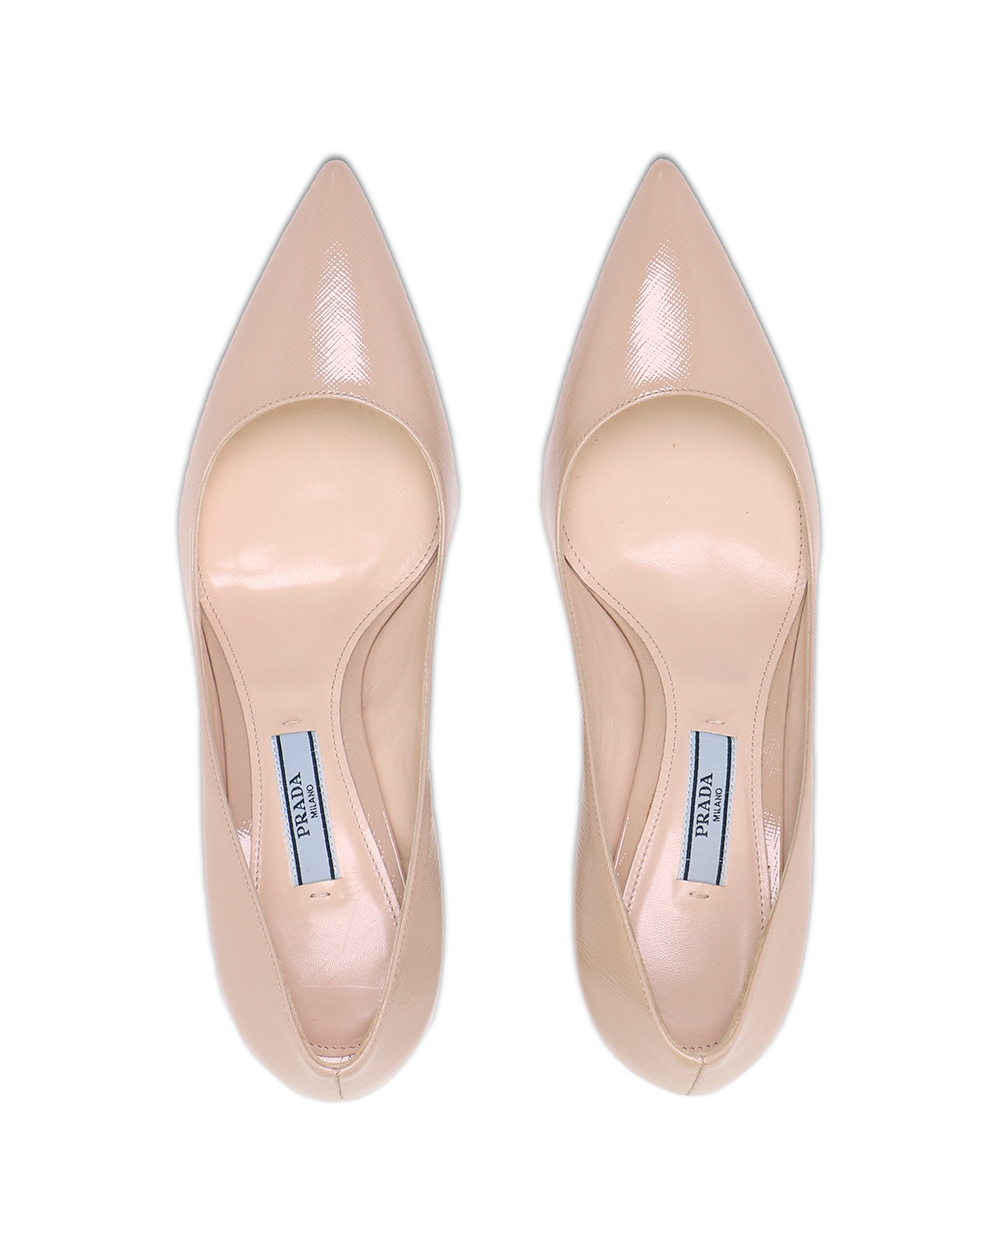 Saffiano Textured Patent Leather Pumps 3